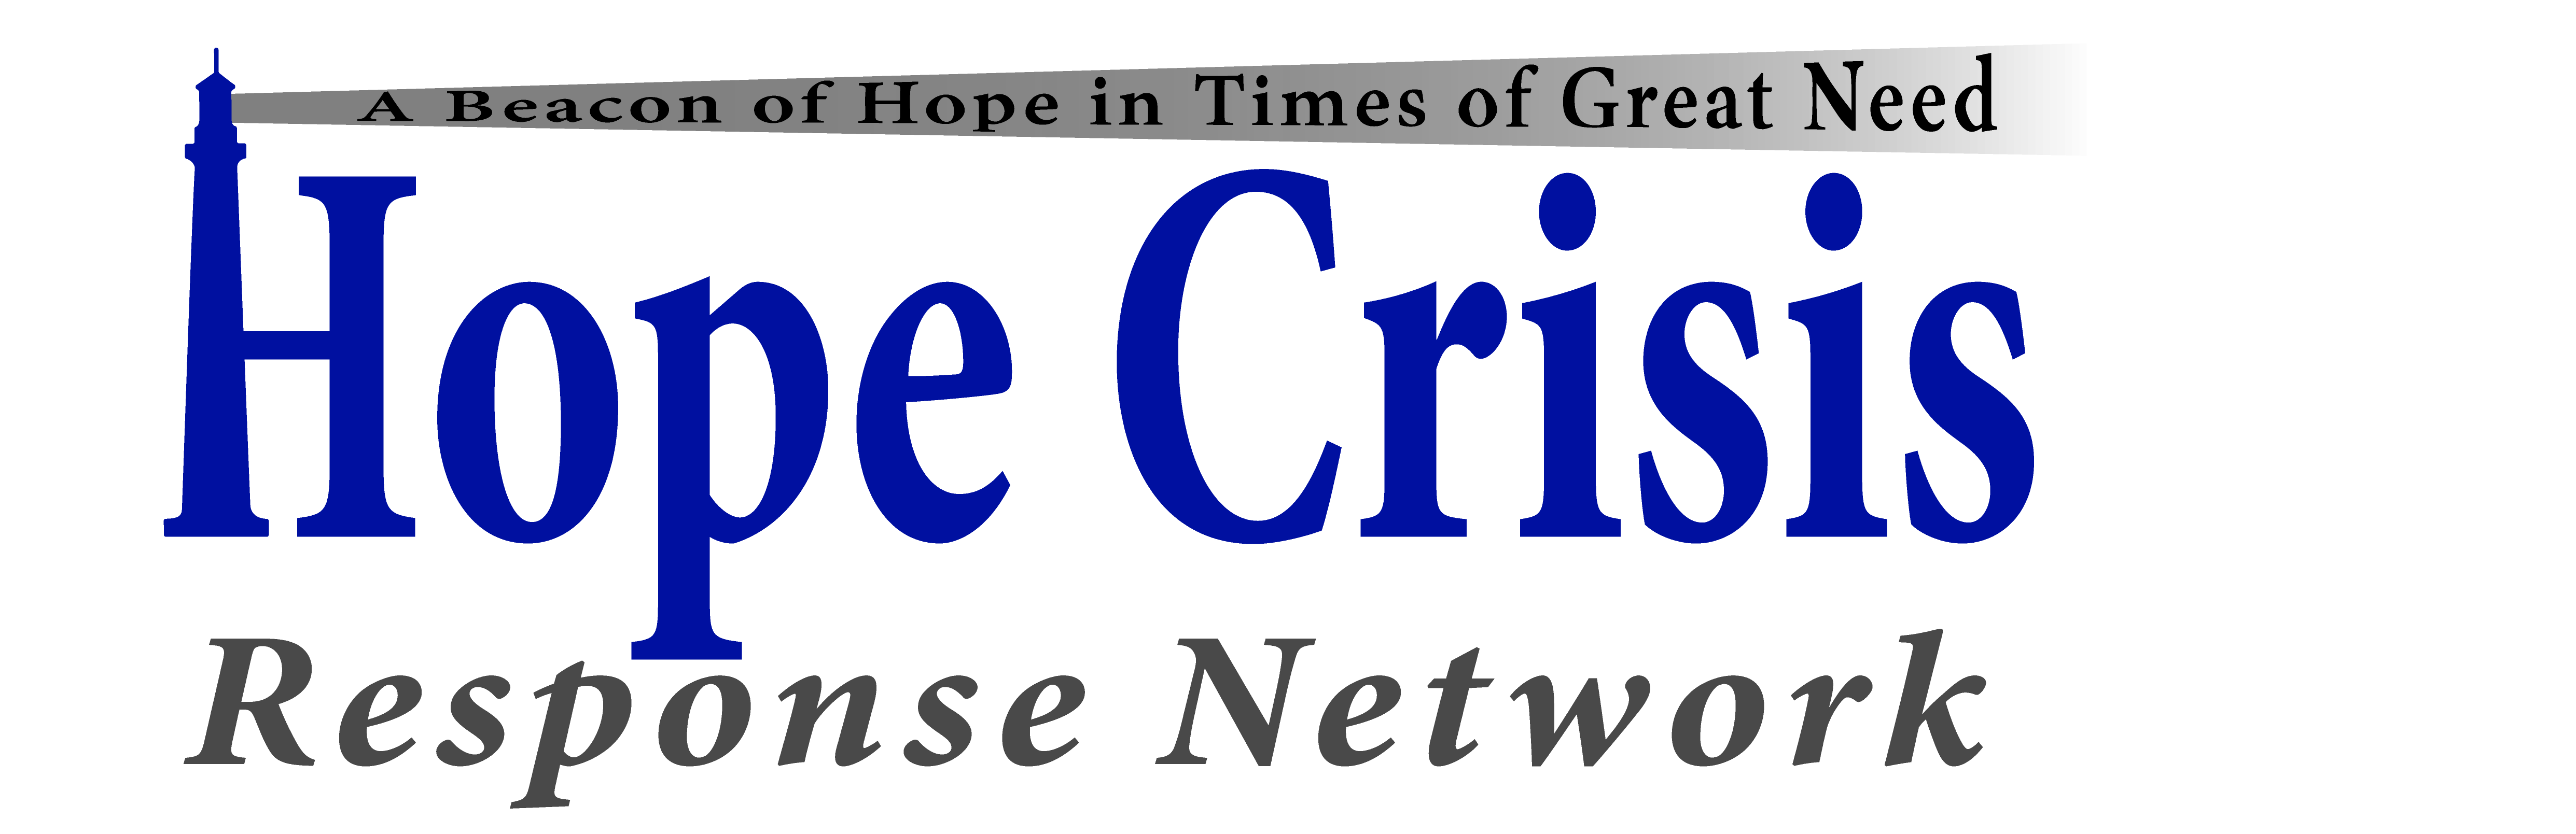 Hope Crisis Response Network | Faith Based Disaster Response